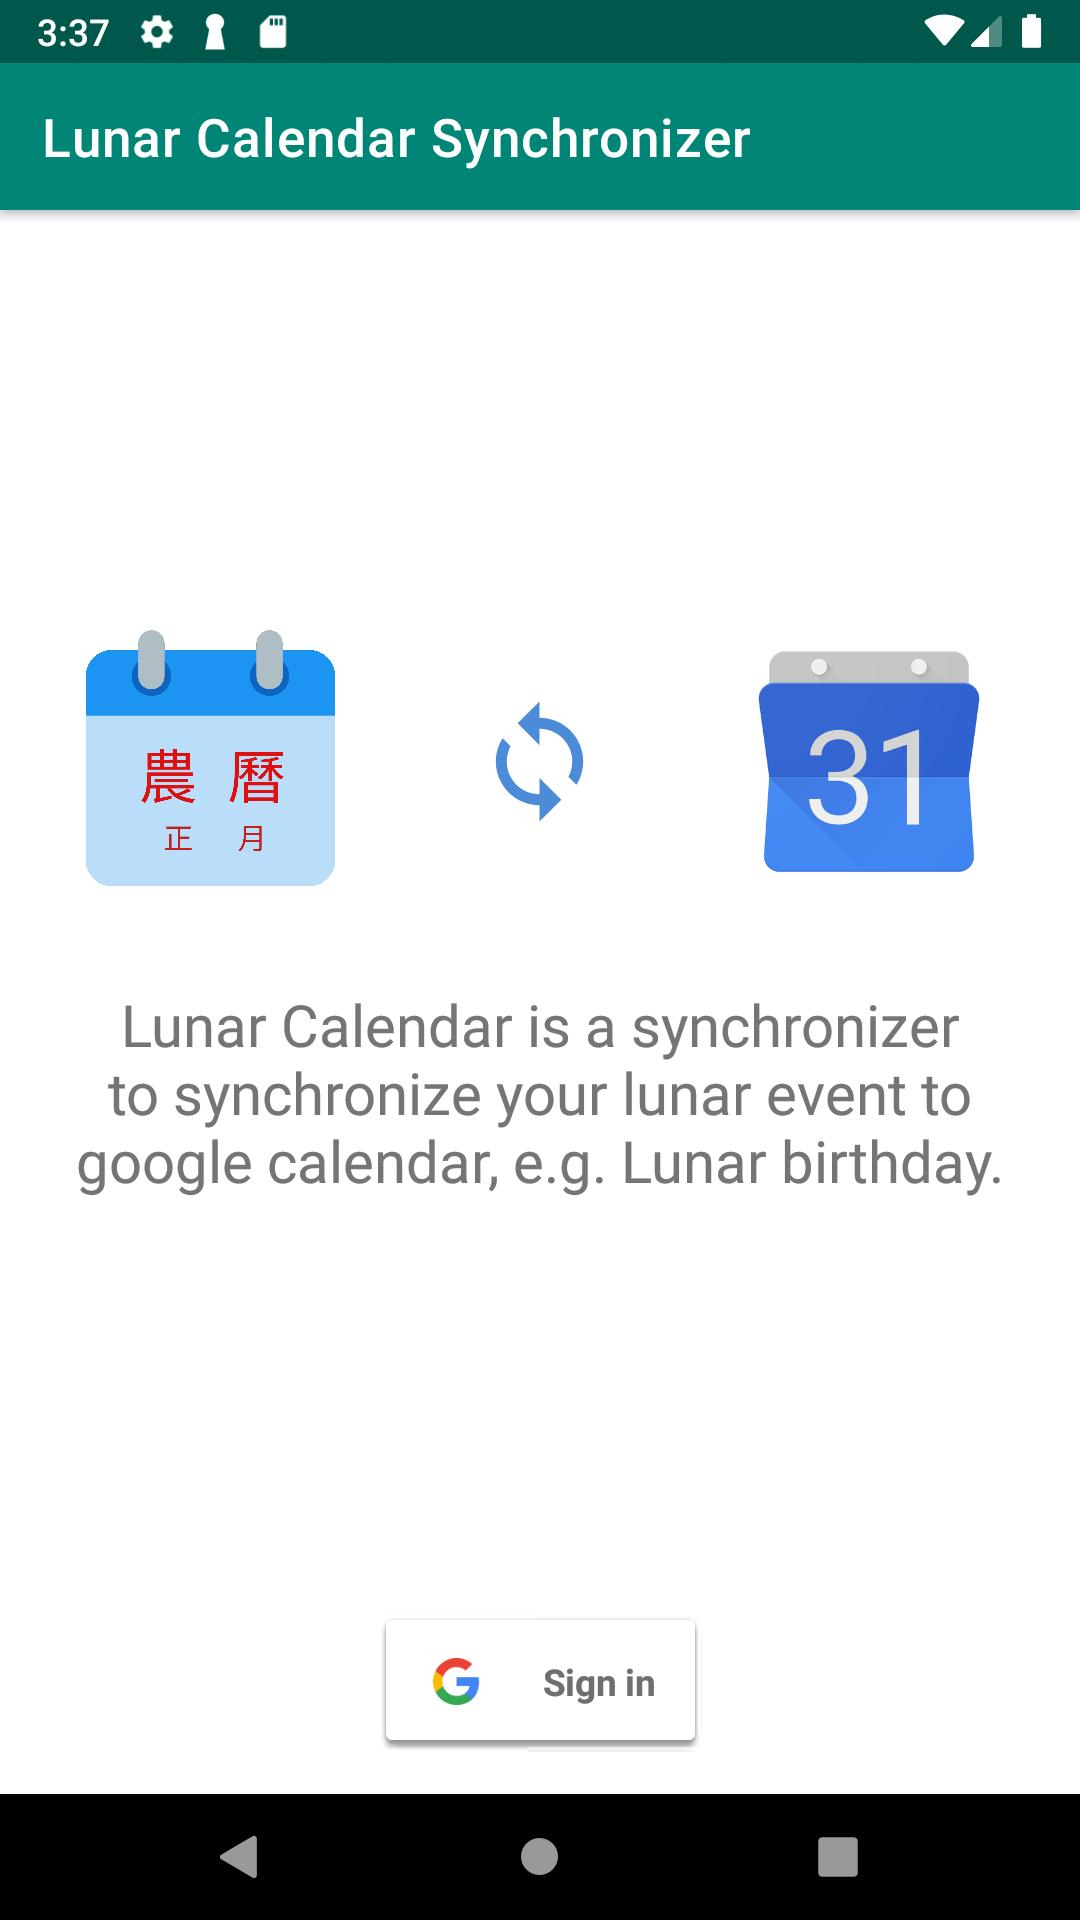 Lunar Calendar Synchronizer Для Андроид  Скачать Apk pertaining to Google Calendar Lunar Birthday